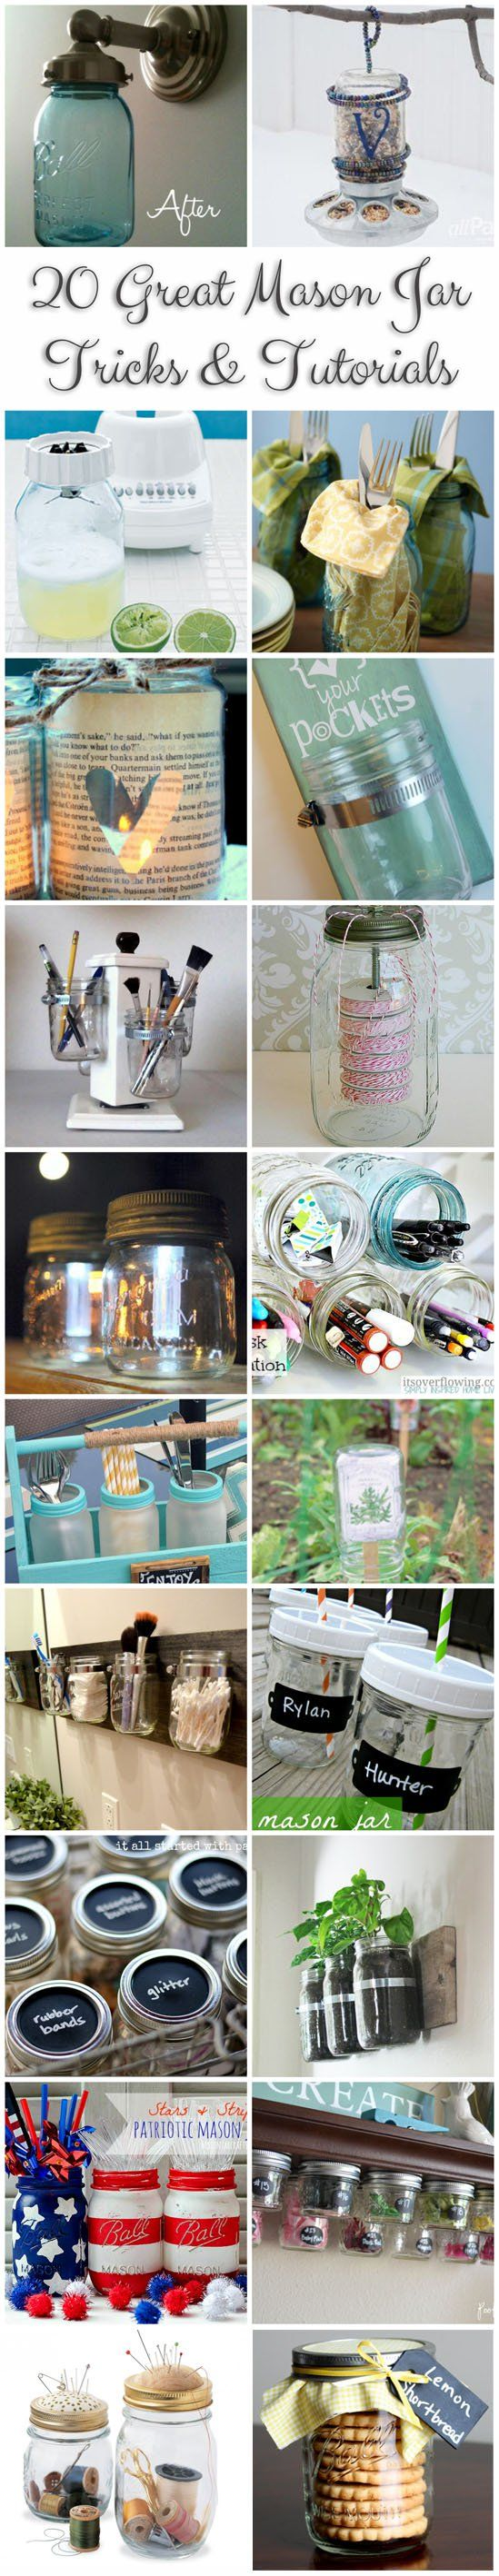 Weekend Pinspiration 20 Mason Jar Ideas 19